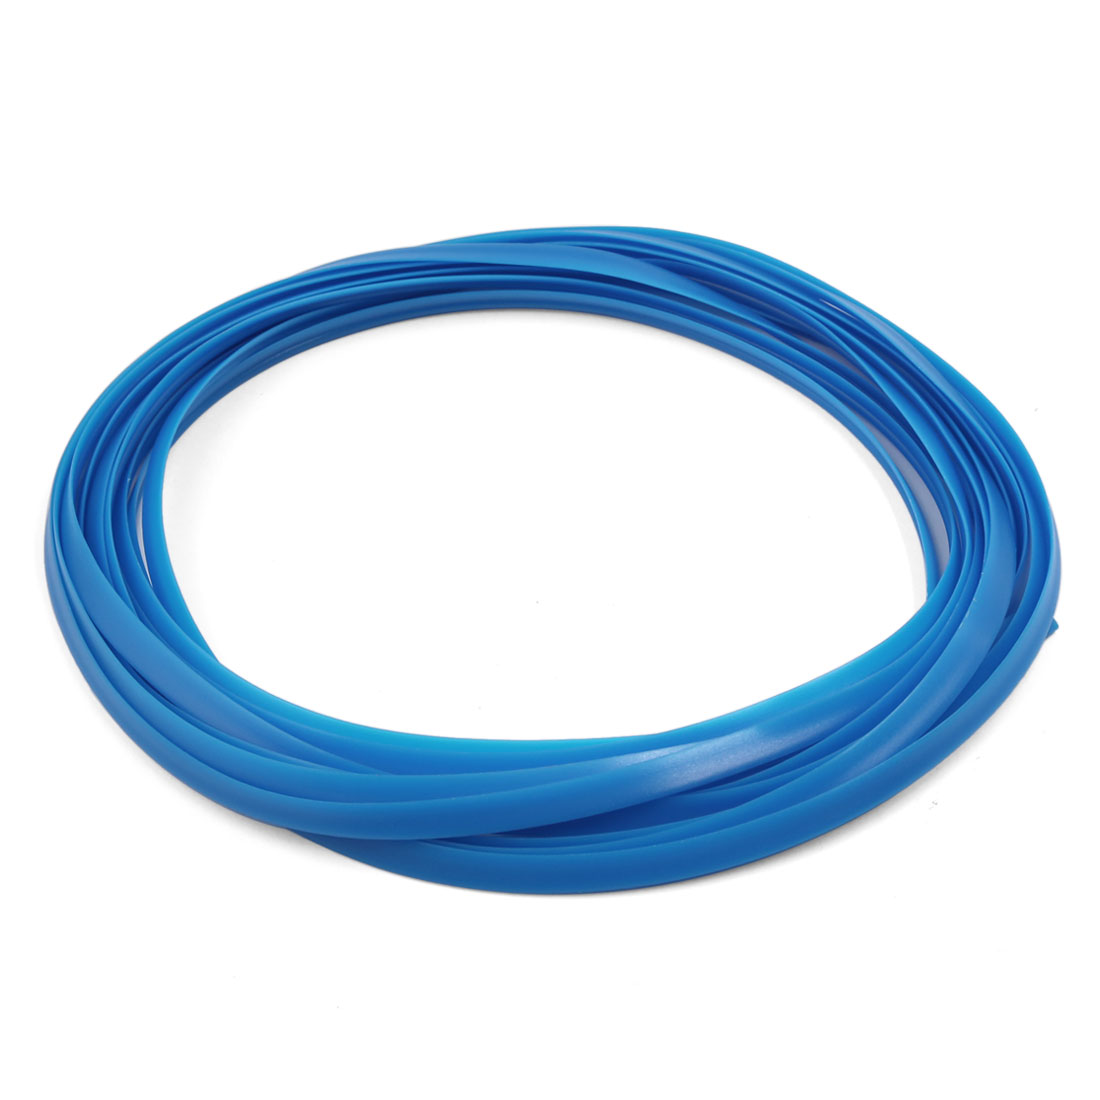 5M Navy Flexible Trim for Car Interior Exterrior Moulding Strip Decorative Line